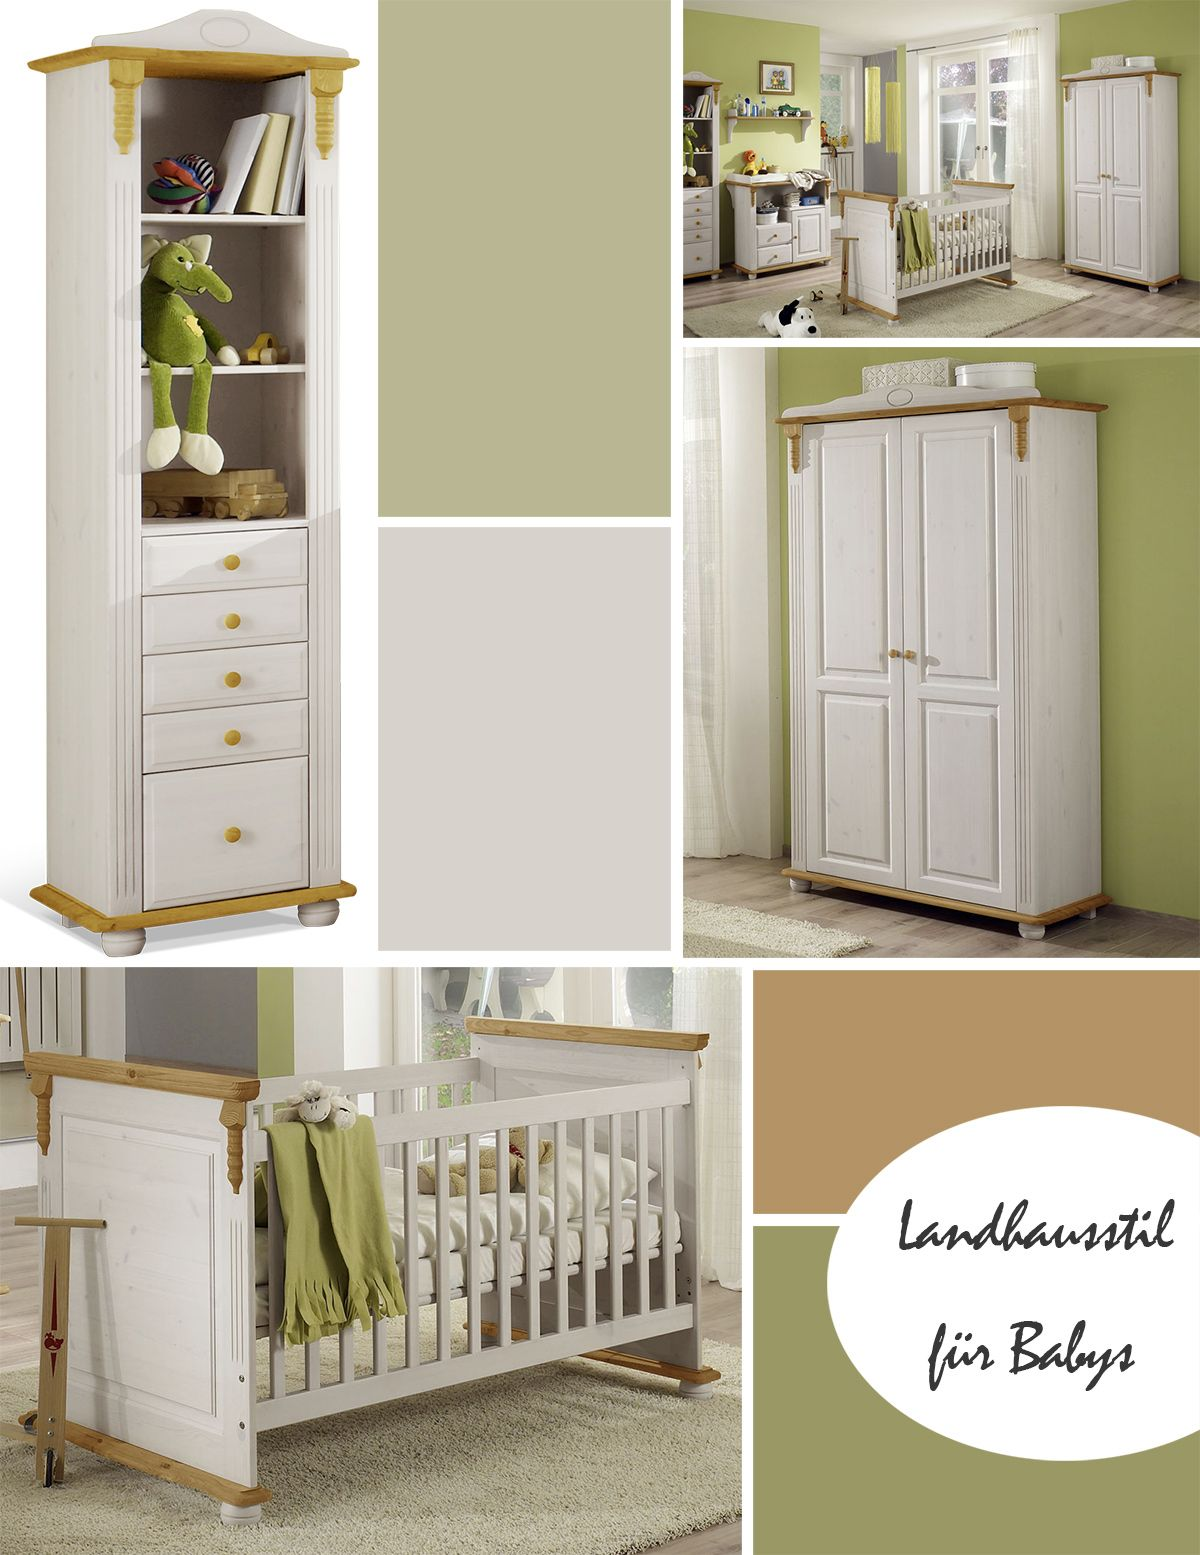 Kinderzimmer Landhausstil Weiss Pin By Betten De On Babyzimmer In 2019 Rustic Baby Rooms Rustic